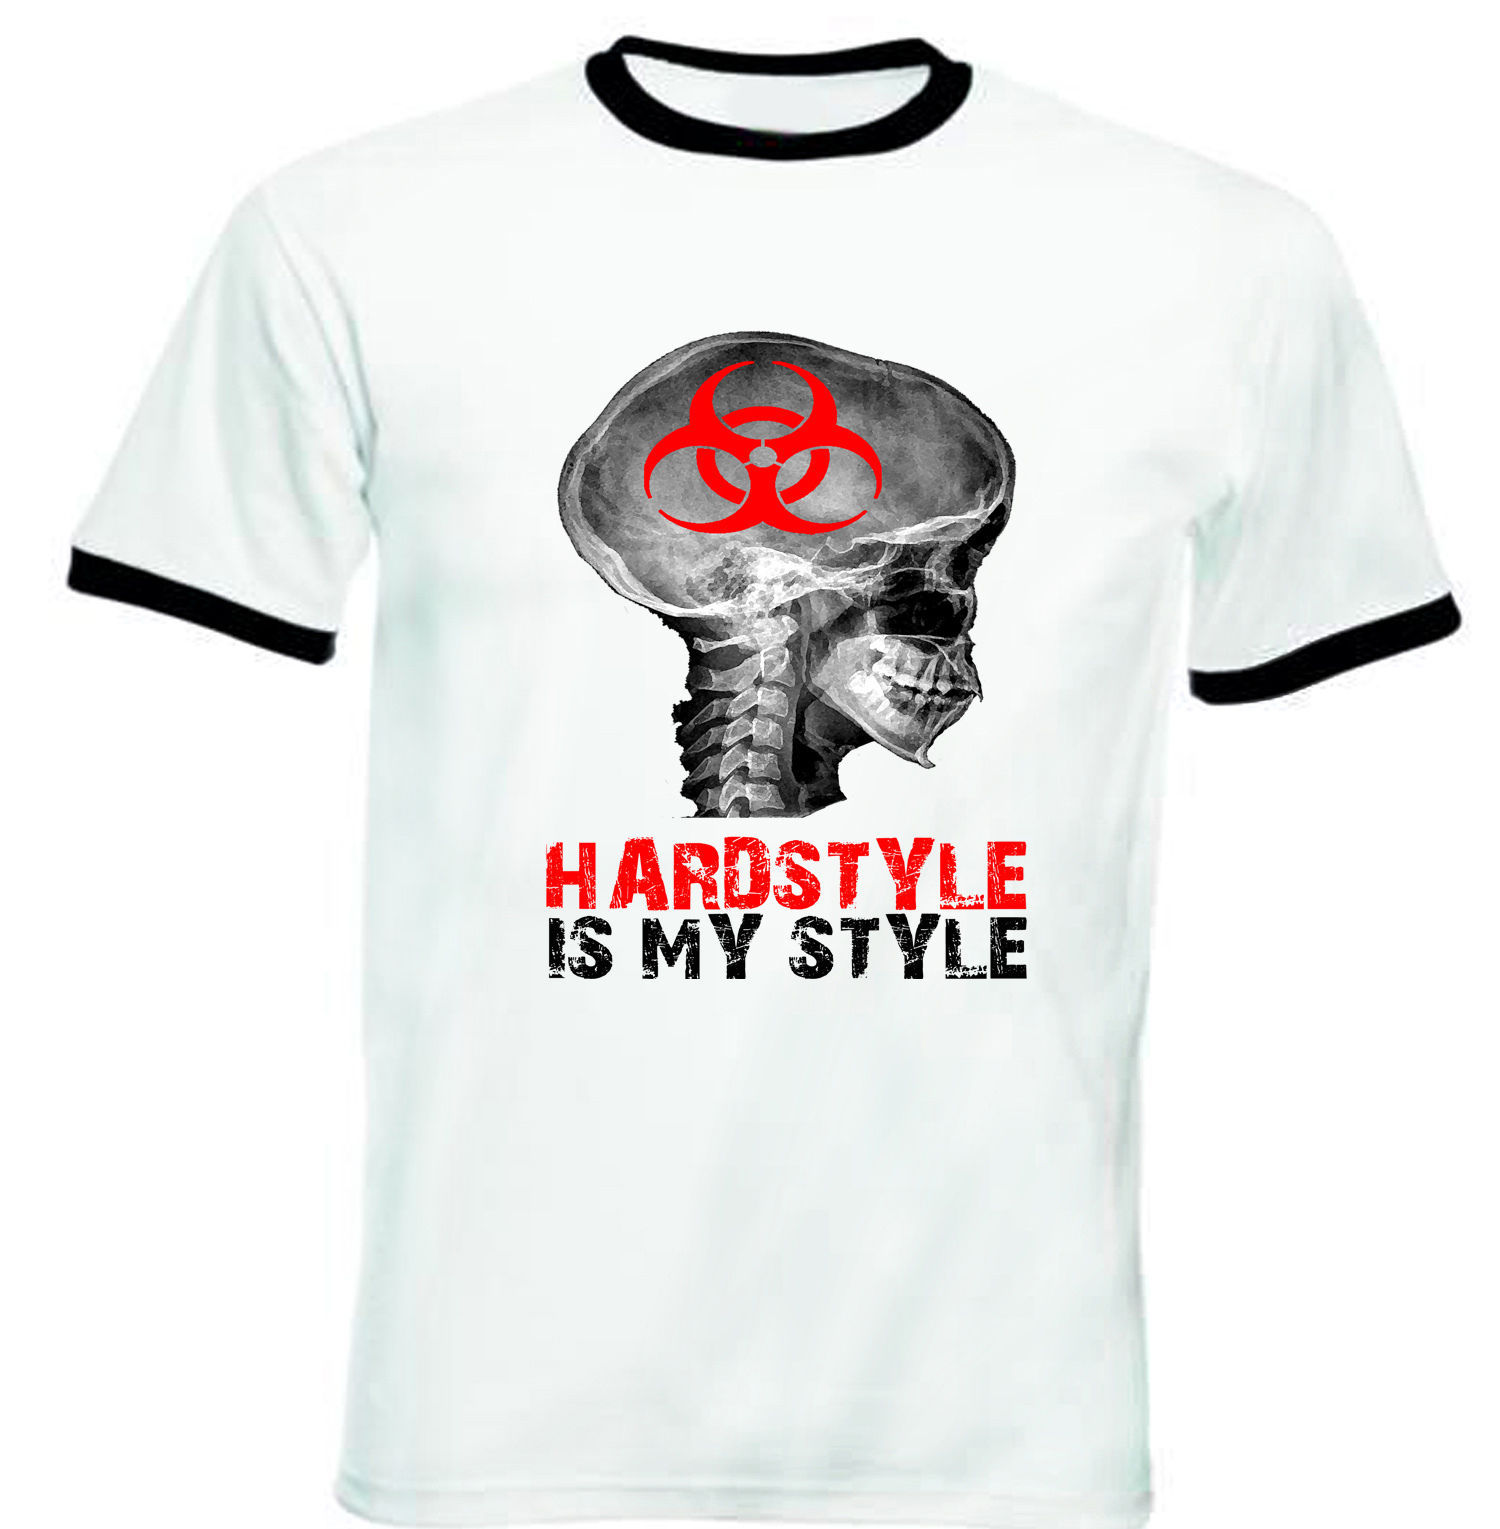 Primary image for HARDSTYLE IS MY STYLE - NEW BLACK RINGER TSHIRT S-M-L-XL-XXL